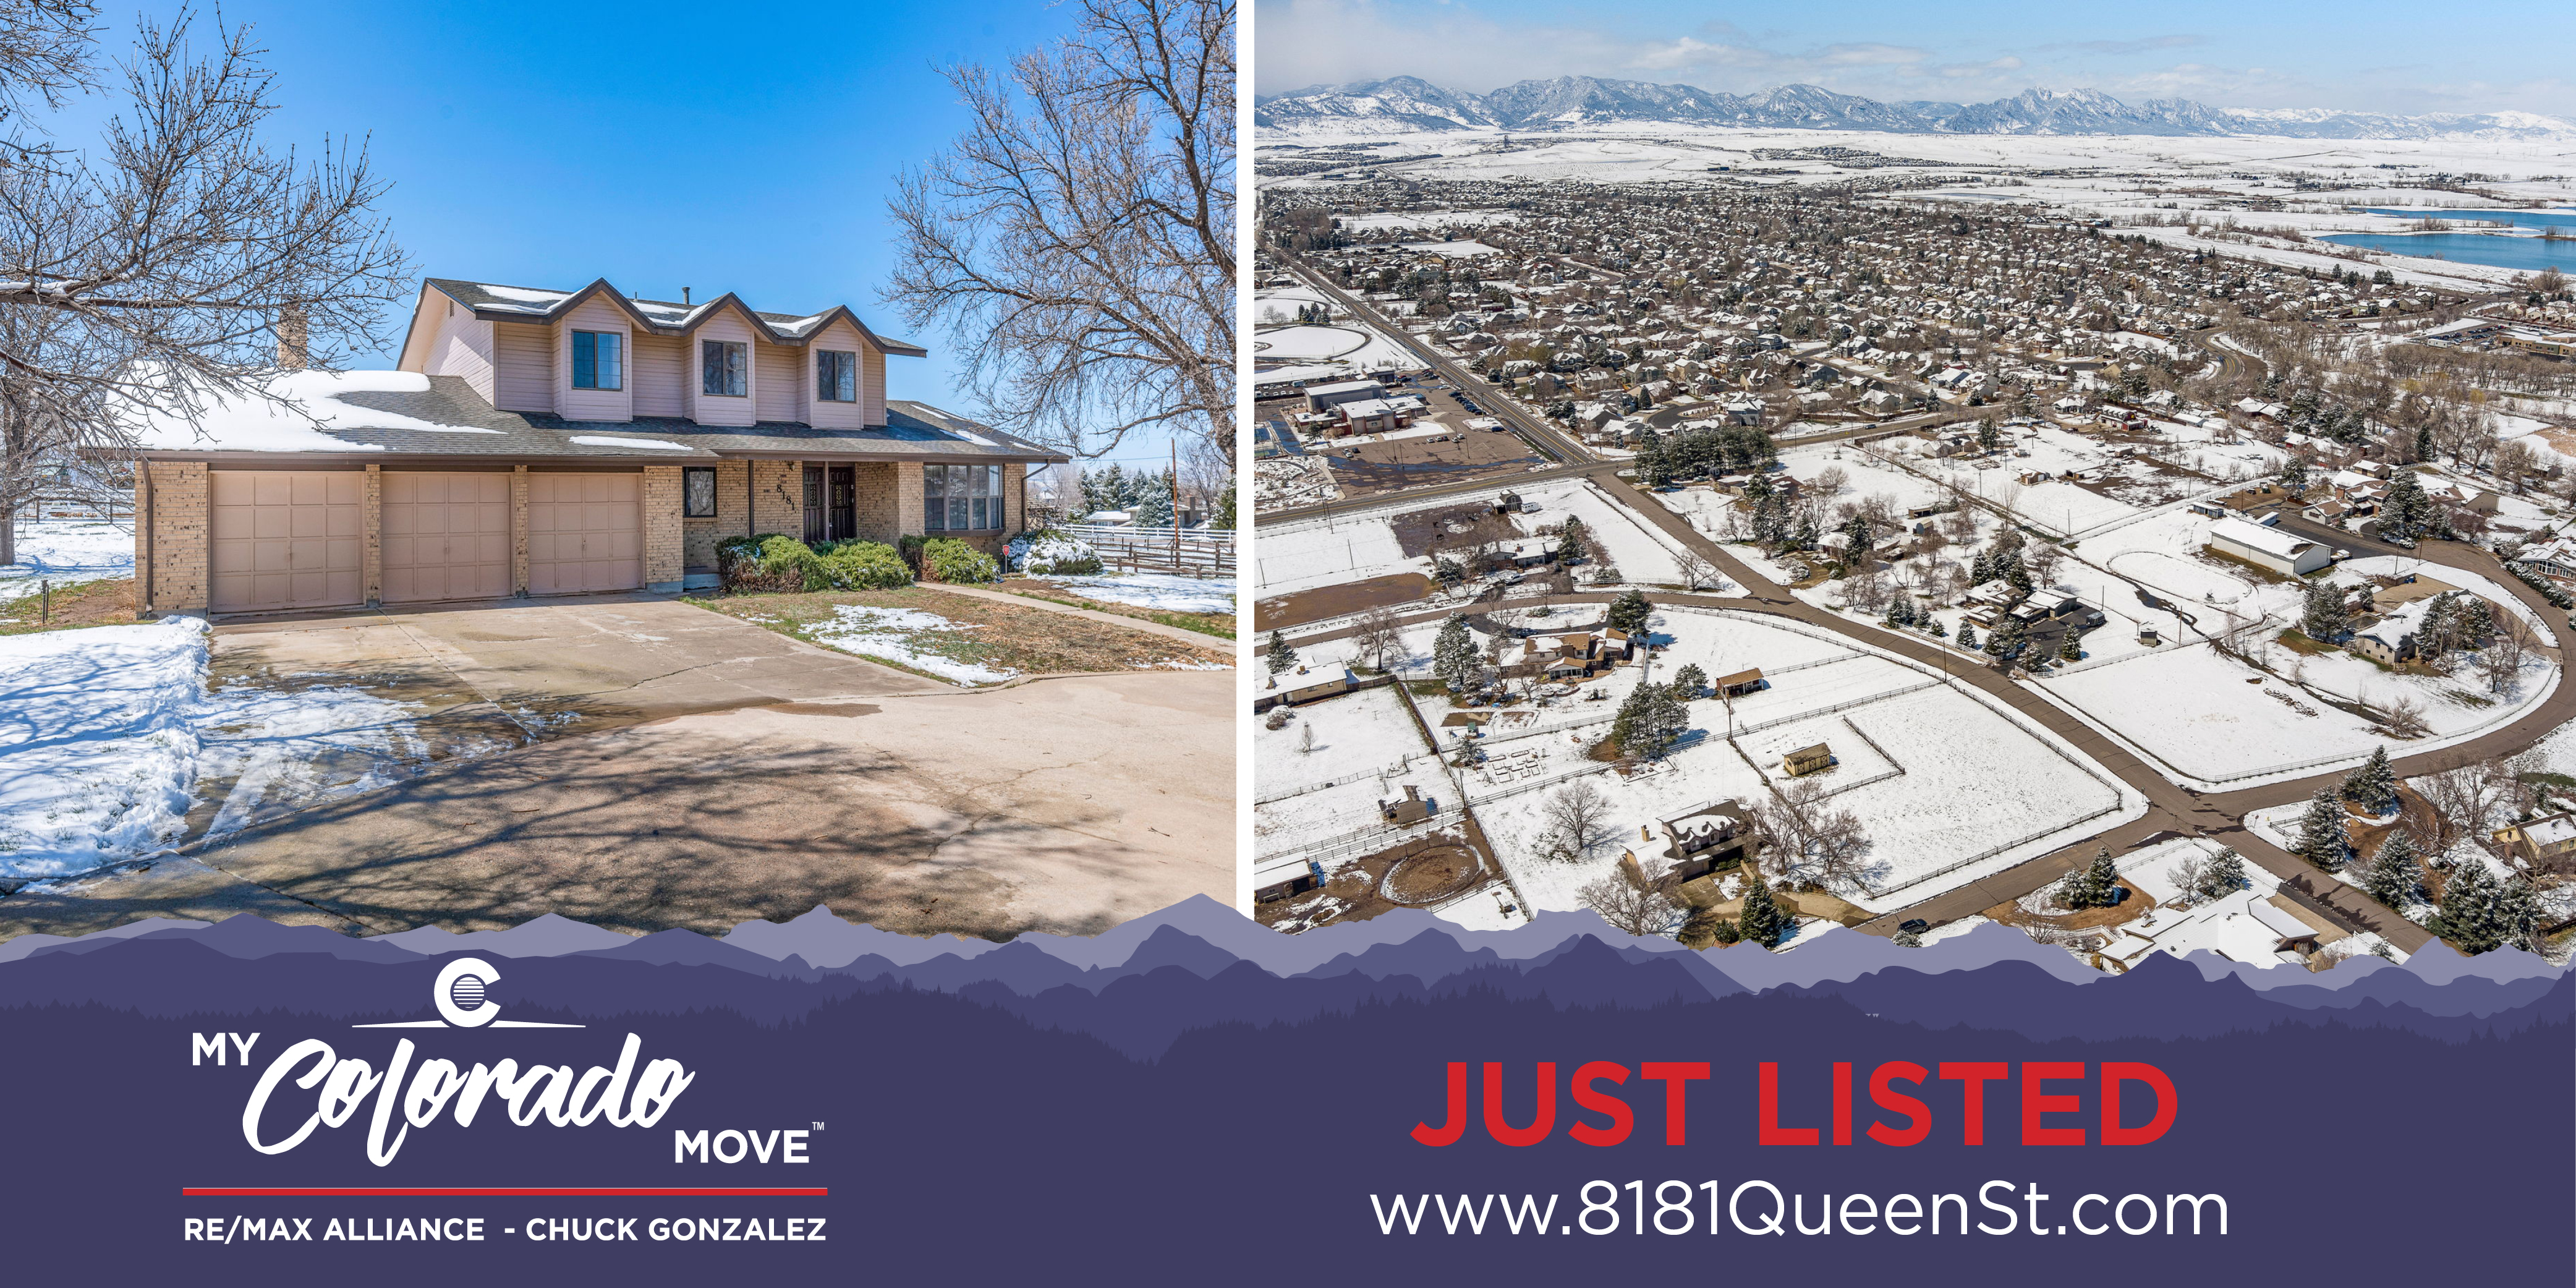 Just listed in Meadowgate Farms - 8181 Queen St, Arvada, CO 80005